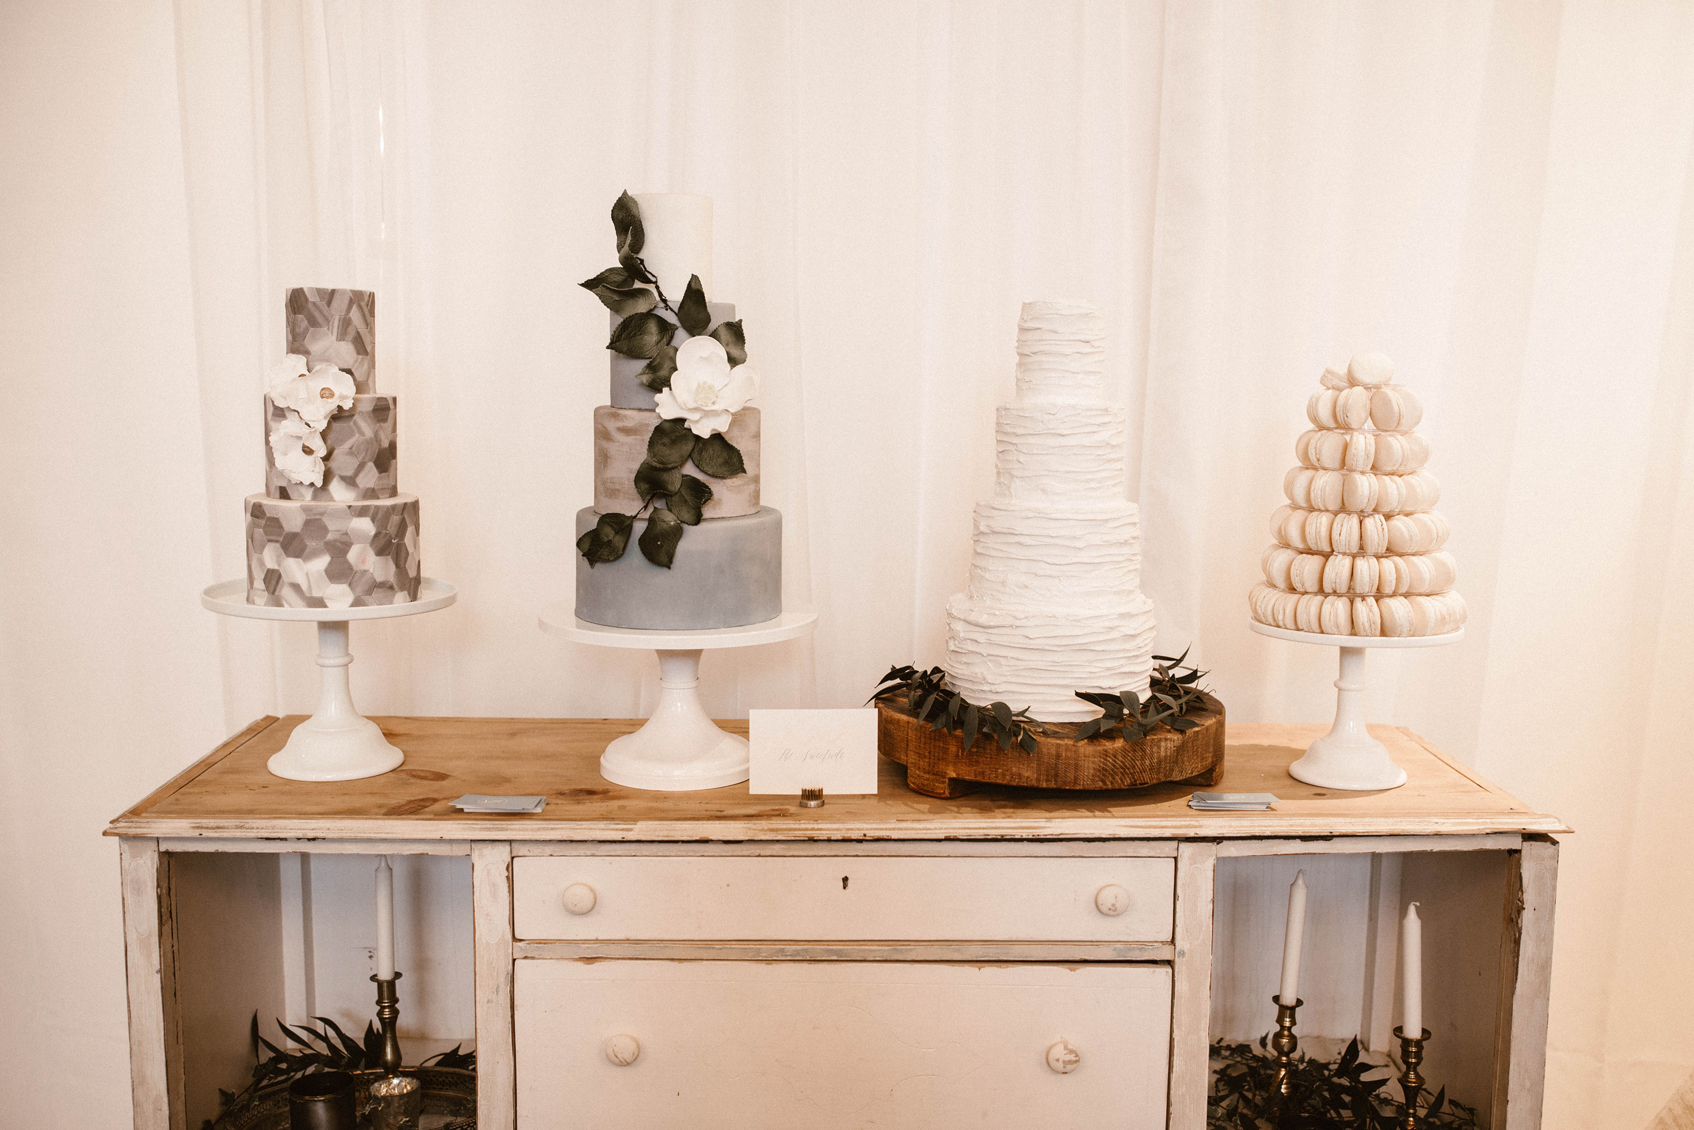 Columbia+Winery_Woodinville_2017_Weddings+In+Woodinville248.jpg